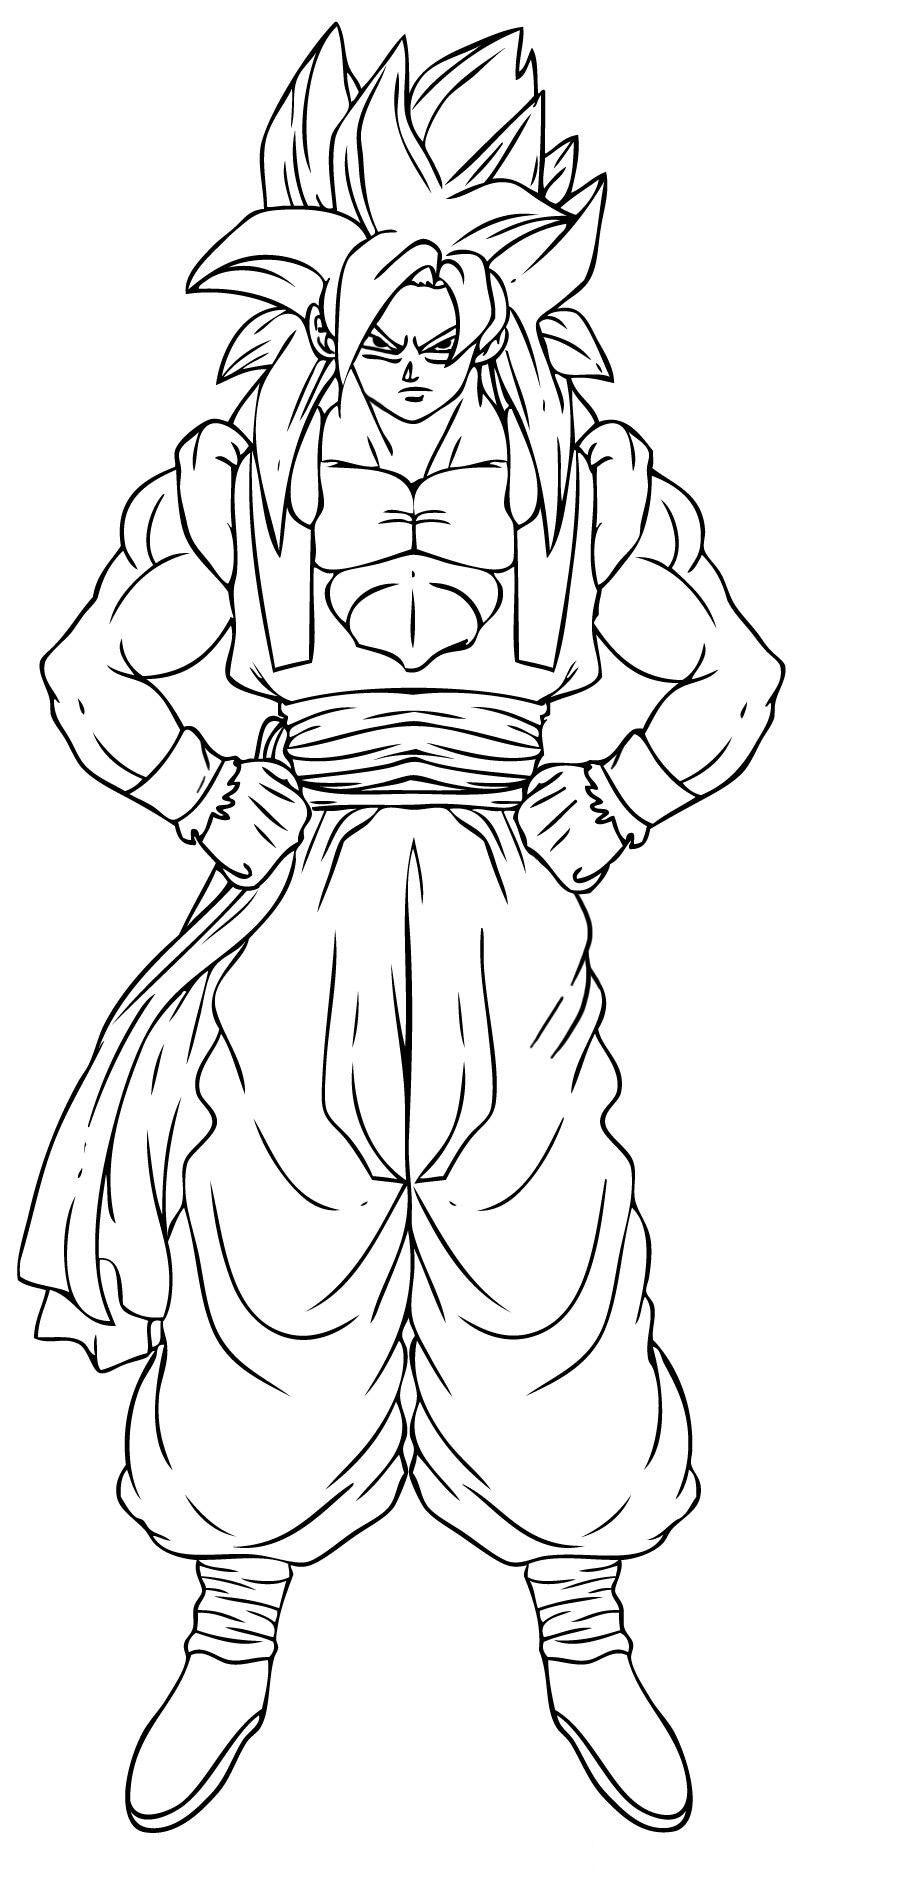 goku printable coloring pages goku coloring pages to download and print for free coloring goku printable pages